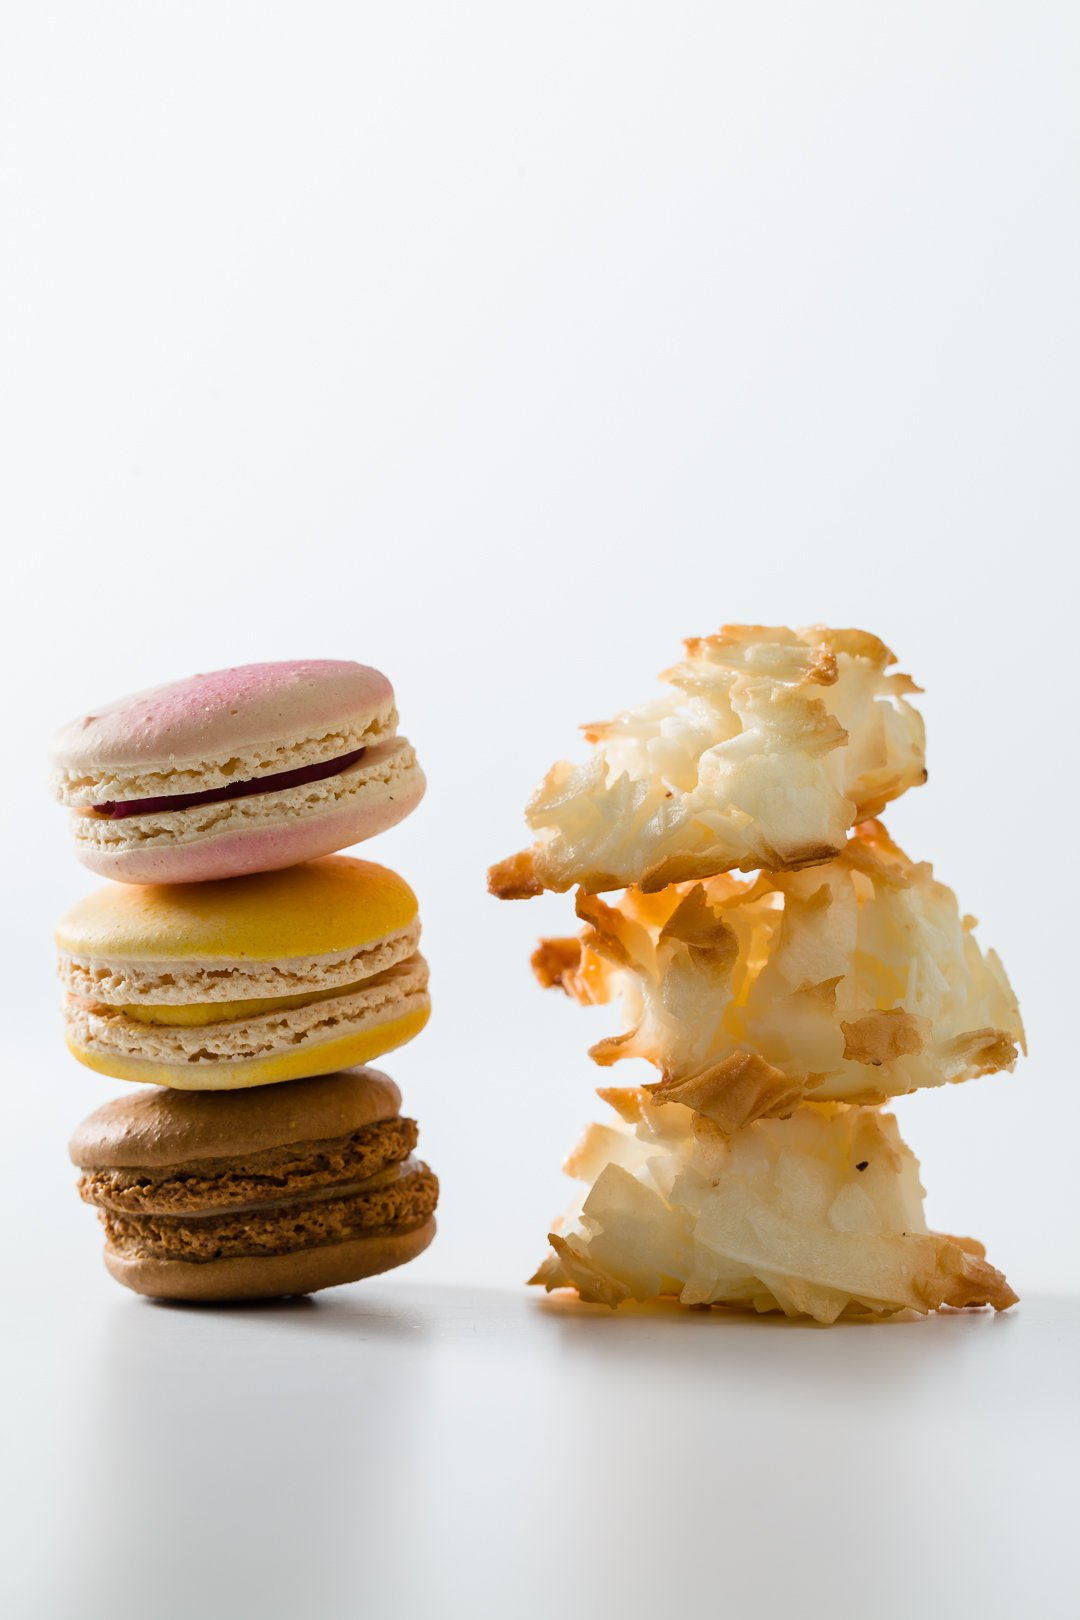 A stack of macarons and a stack of macaroons